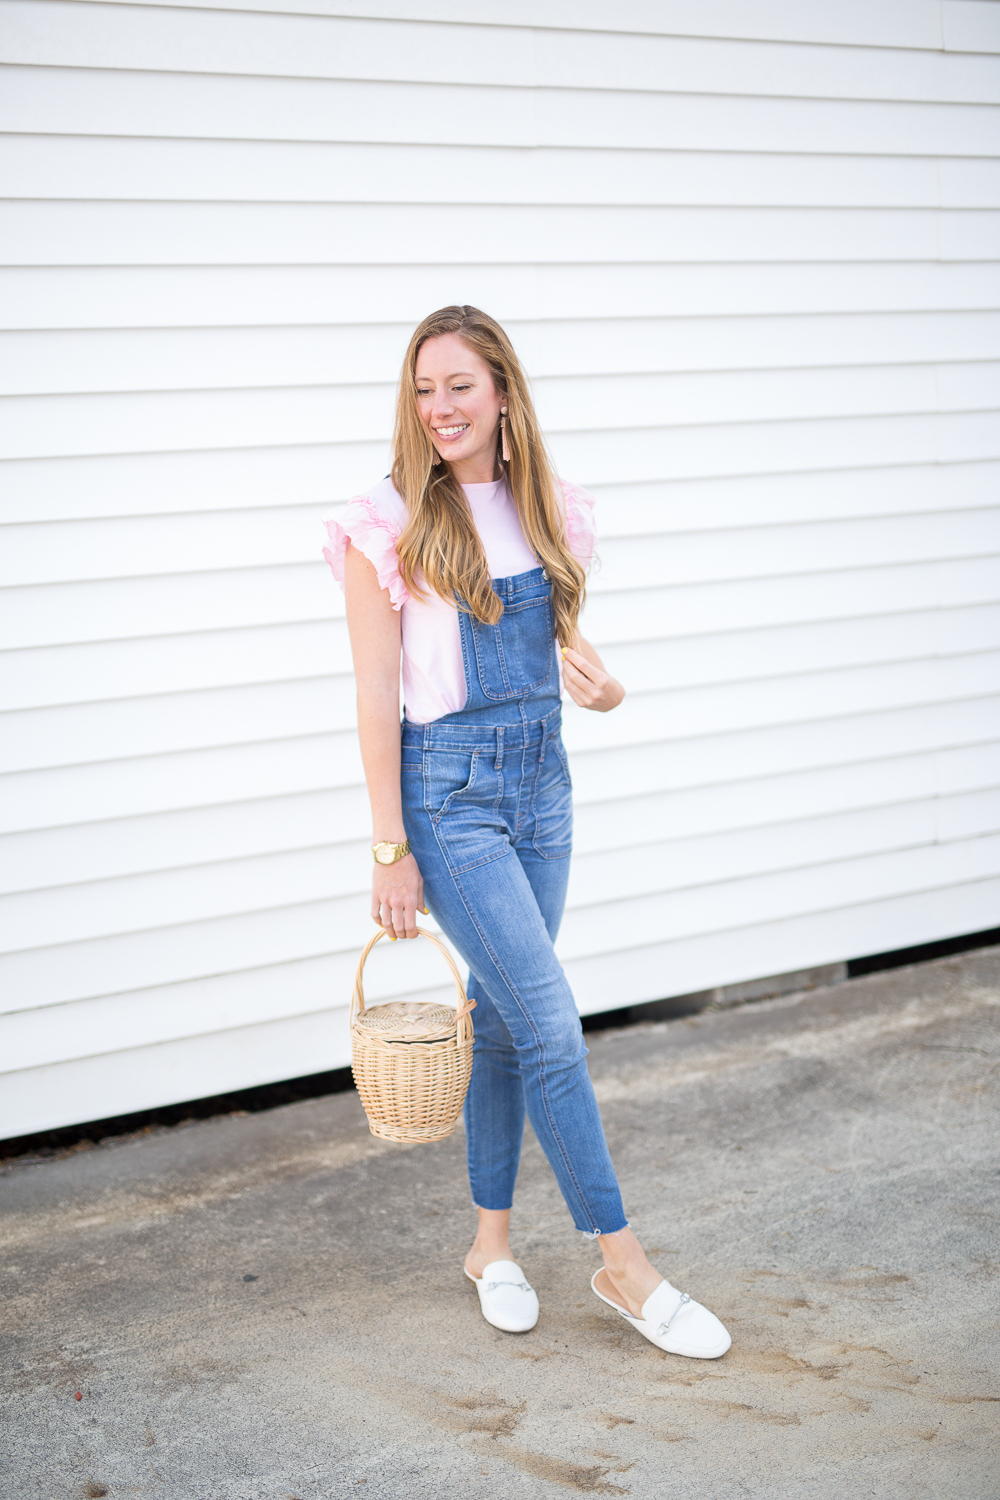 fb902b27e34a 5 Ways to Style Overalls for Spring - Sunshine Style